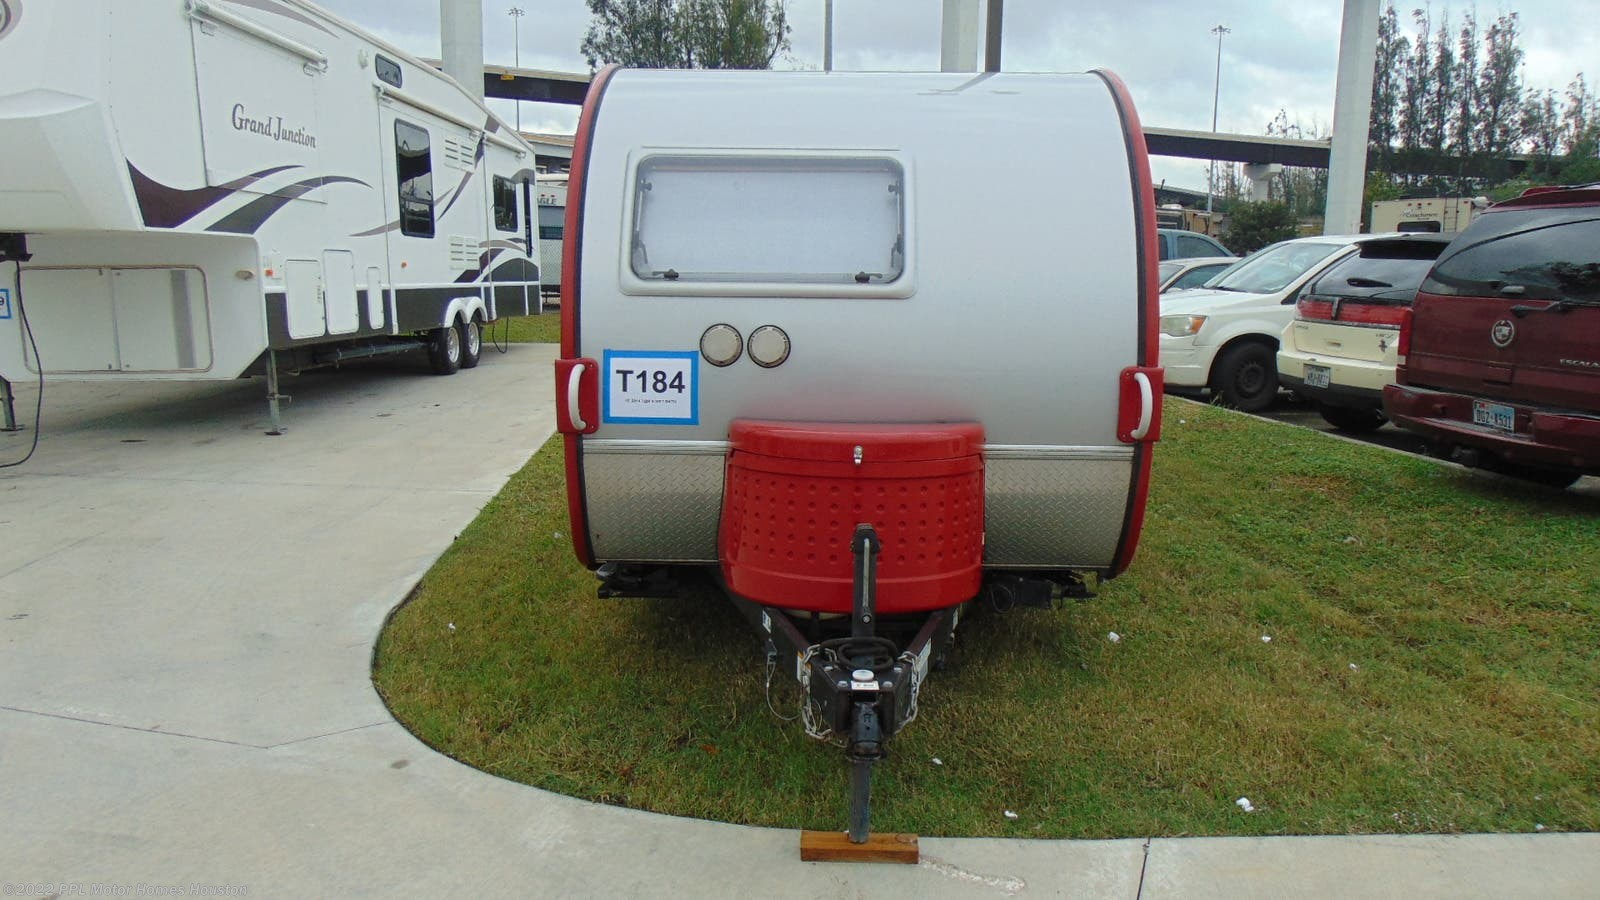 2014 Little Guy Rv T B S S Max For Sale In Houston Tx 77074 T184